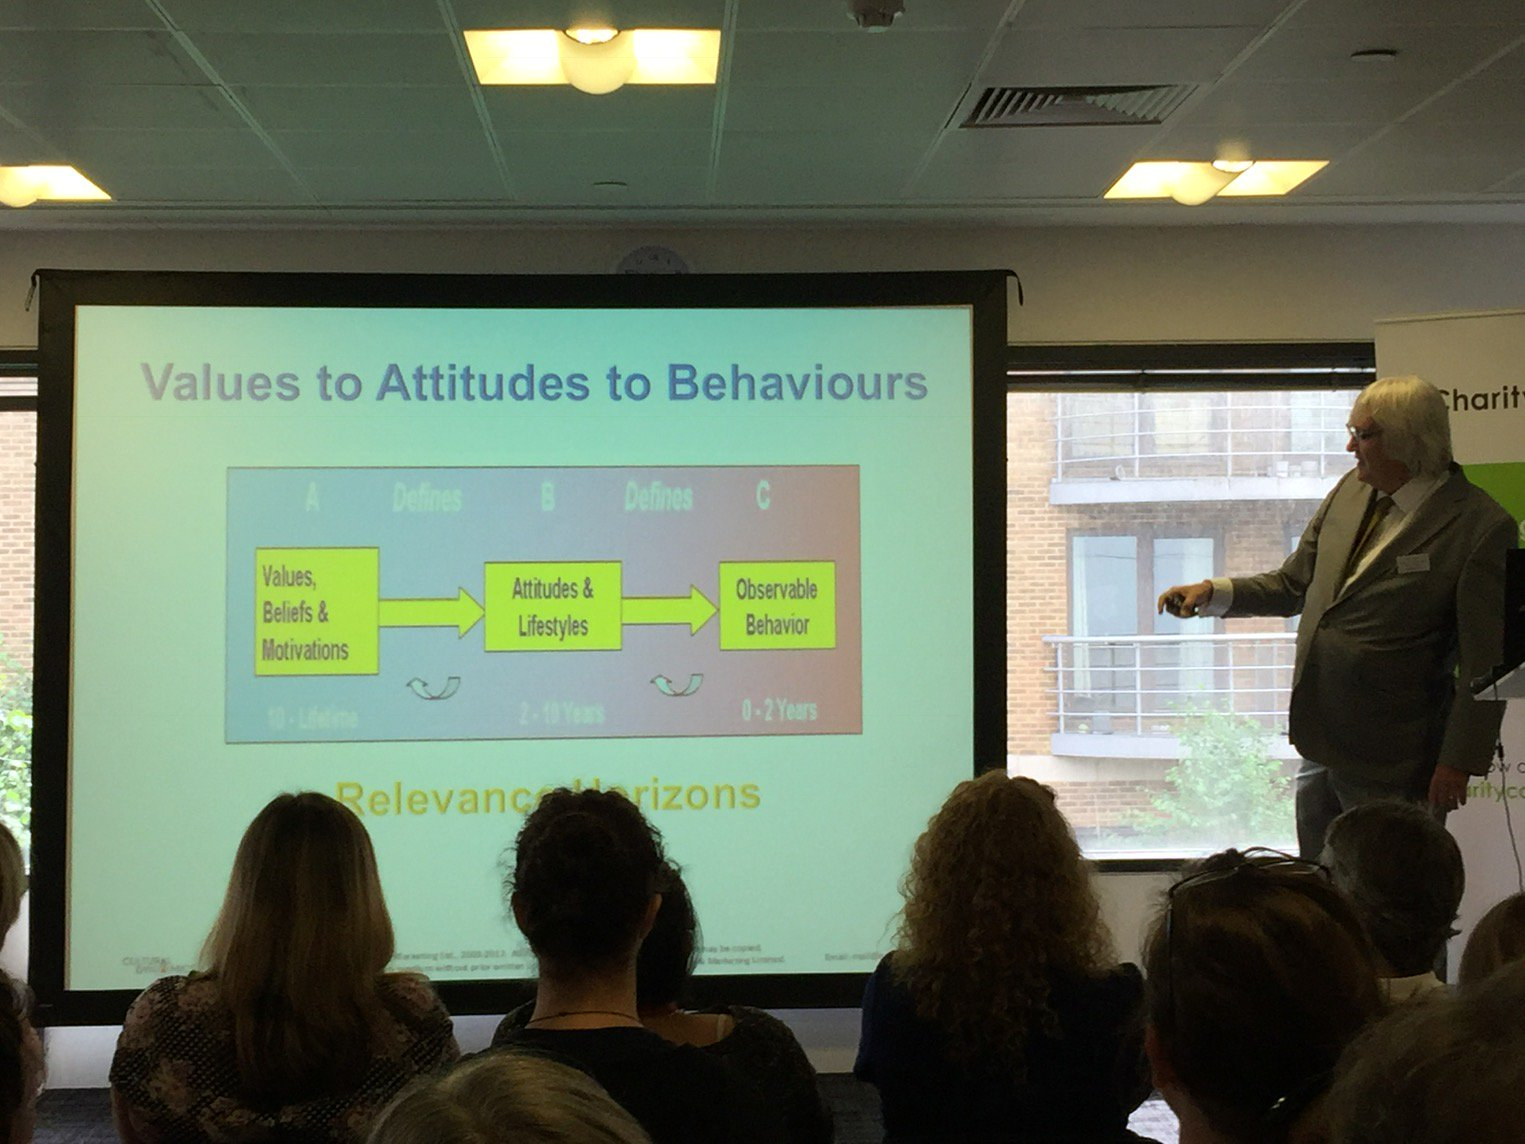 Pat Dade at #CCPsychComms on how values define attitudes define behaviour: remember this #MACampaigning students? https://t.co/cQwyznHxcN